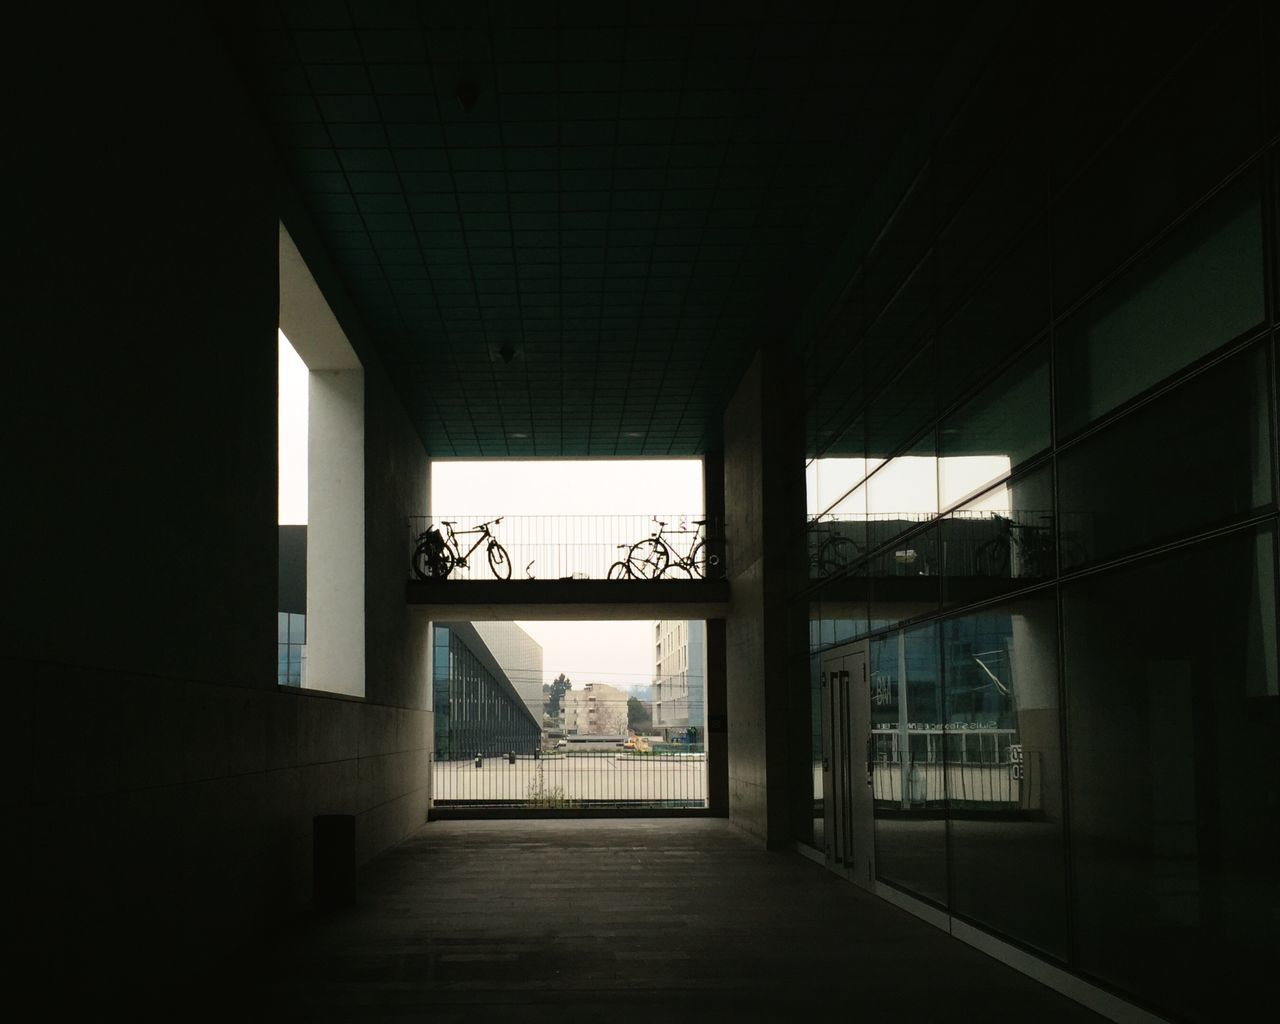 Low Angle View Of Bicycles Parked In Building